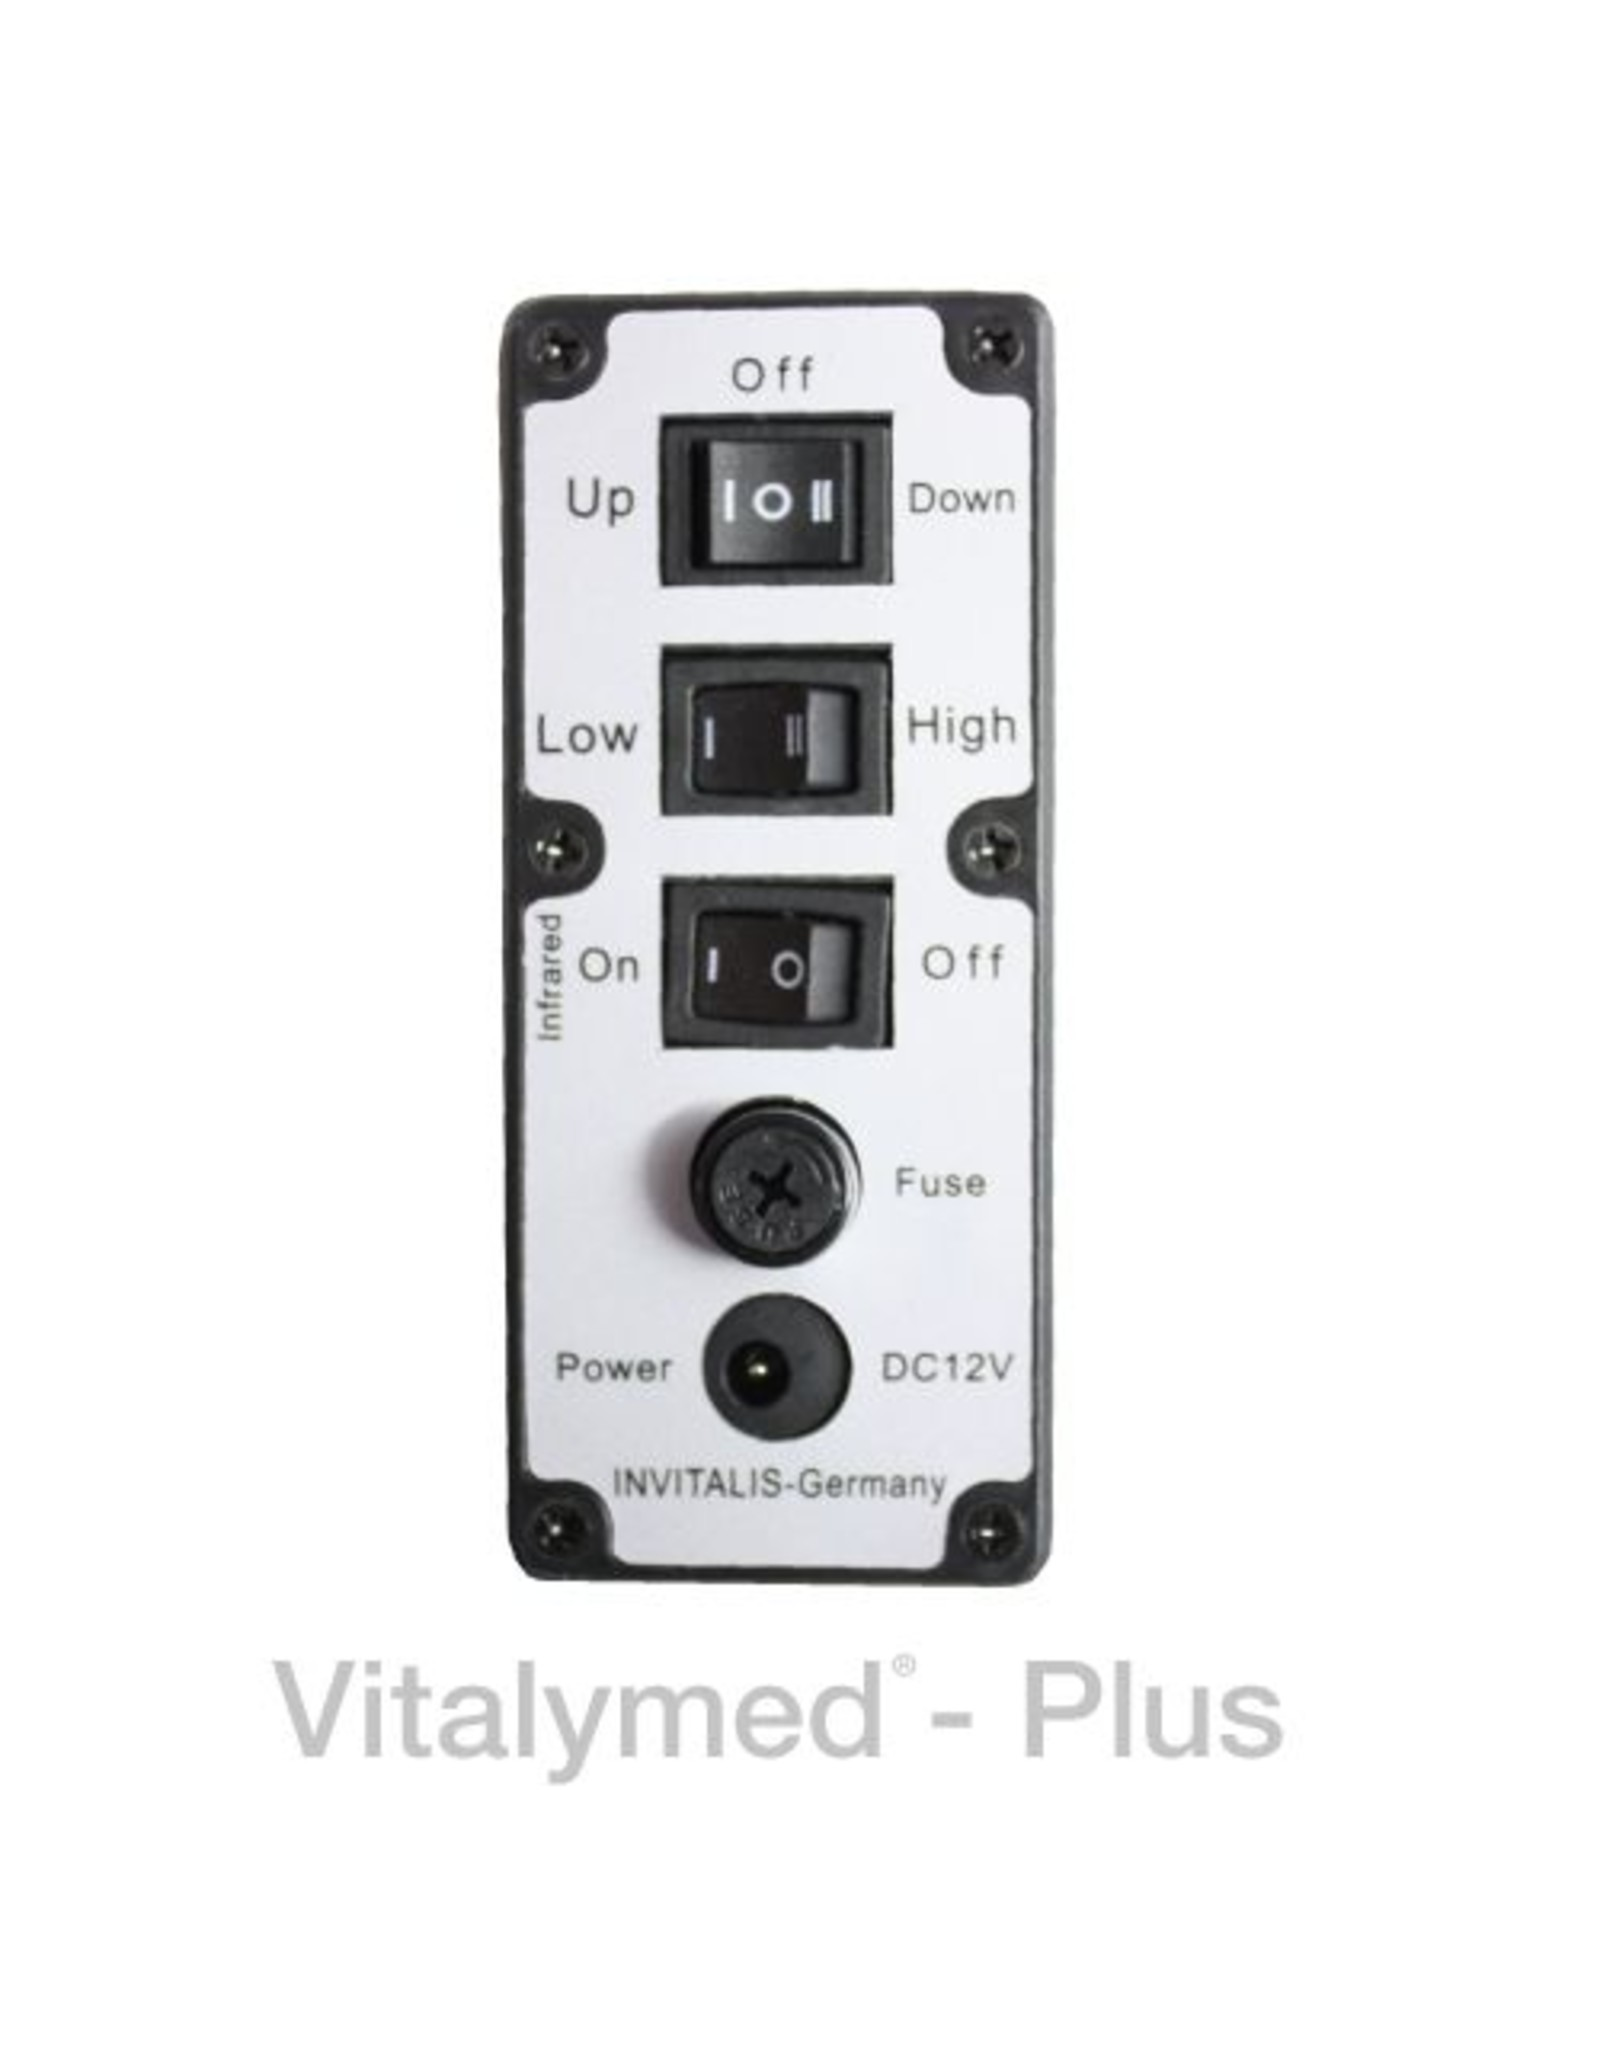 INVITALIS Vitalymed Plus - Weiss